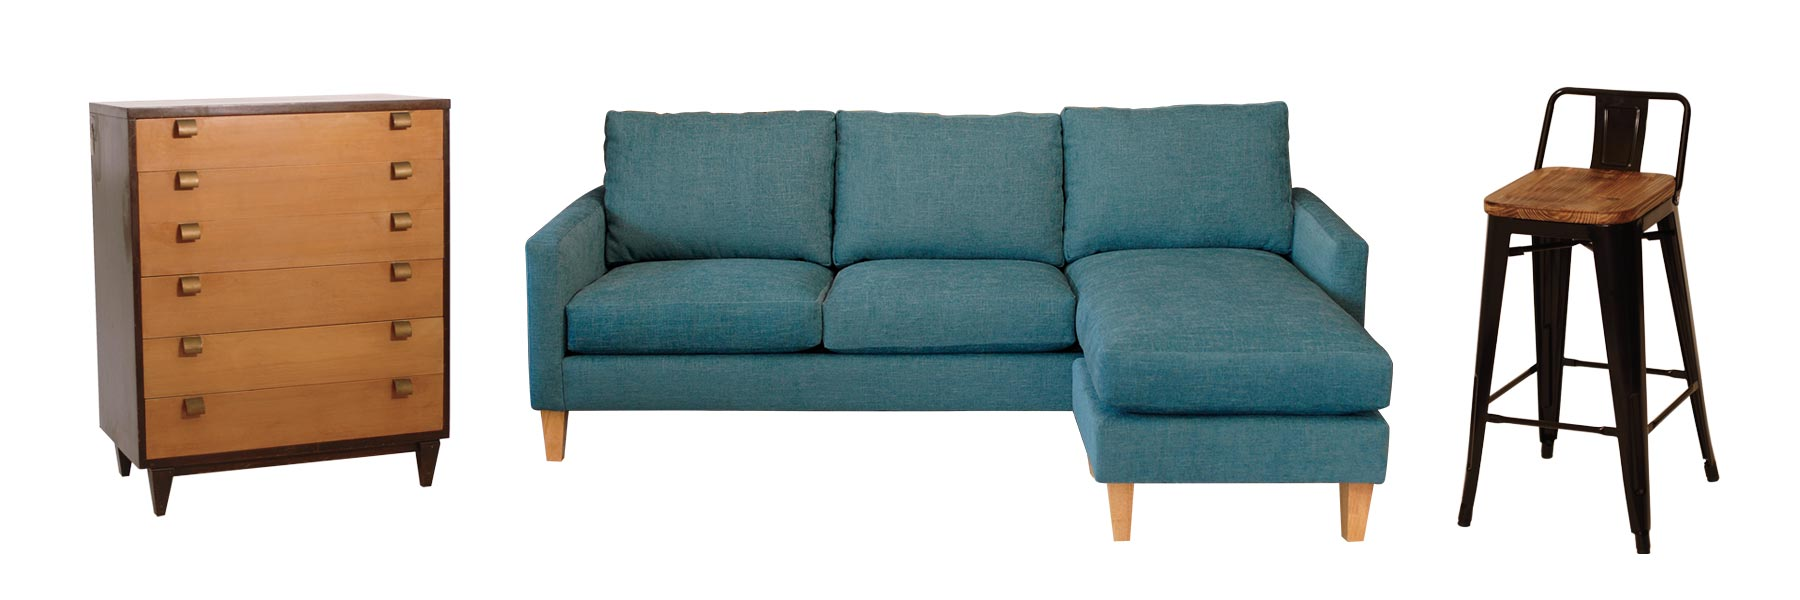 teal sofa with a chaise